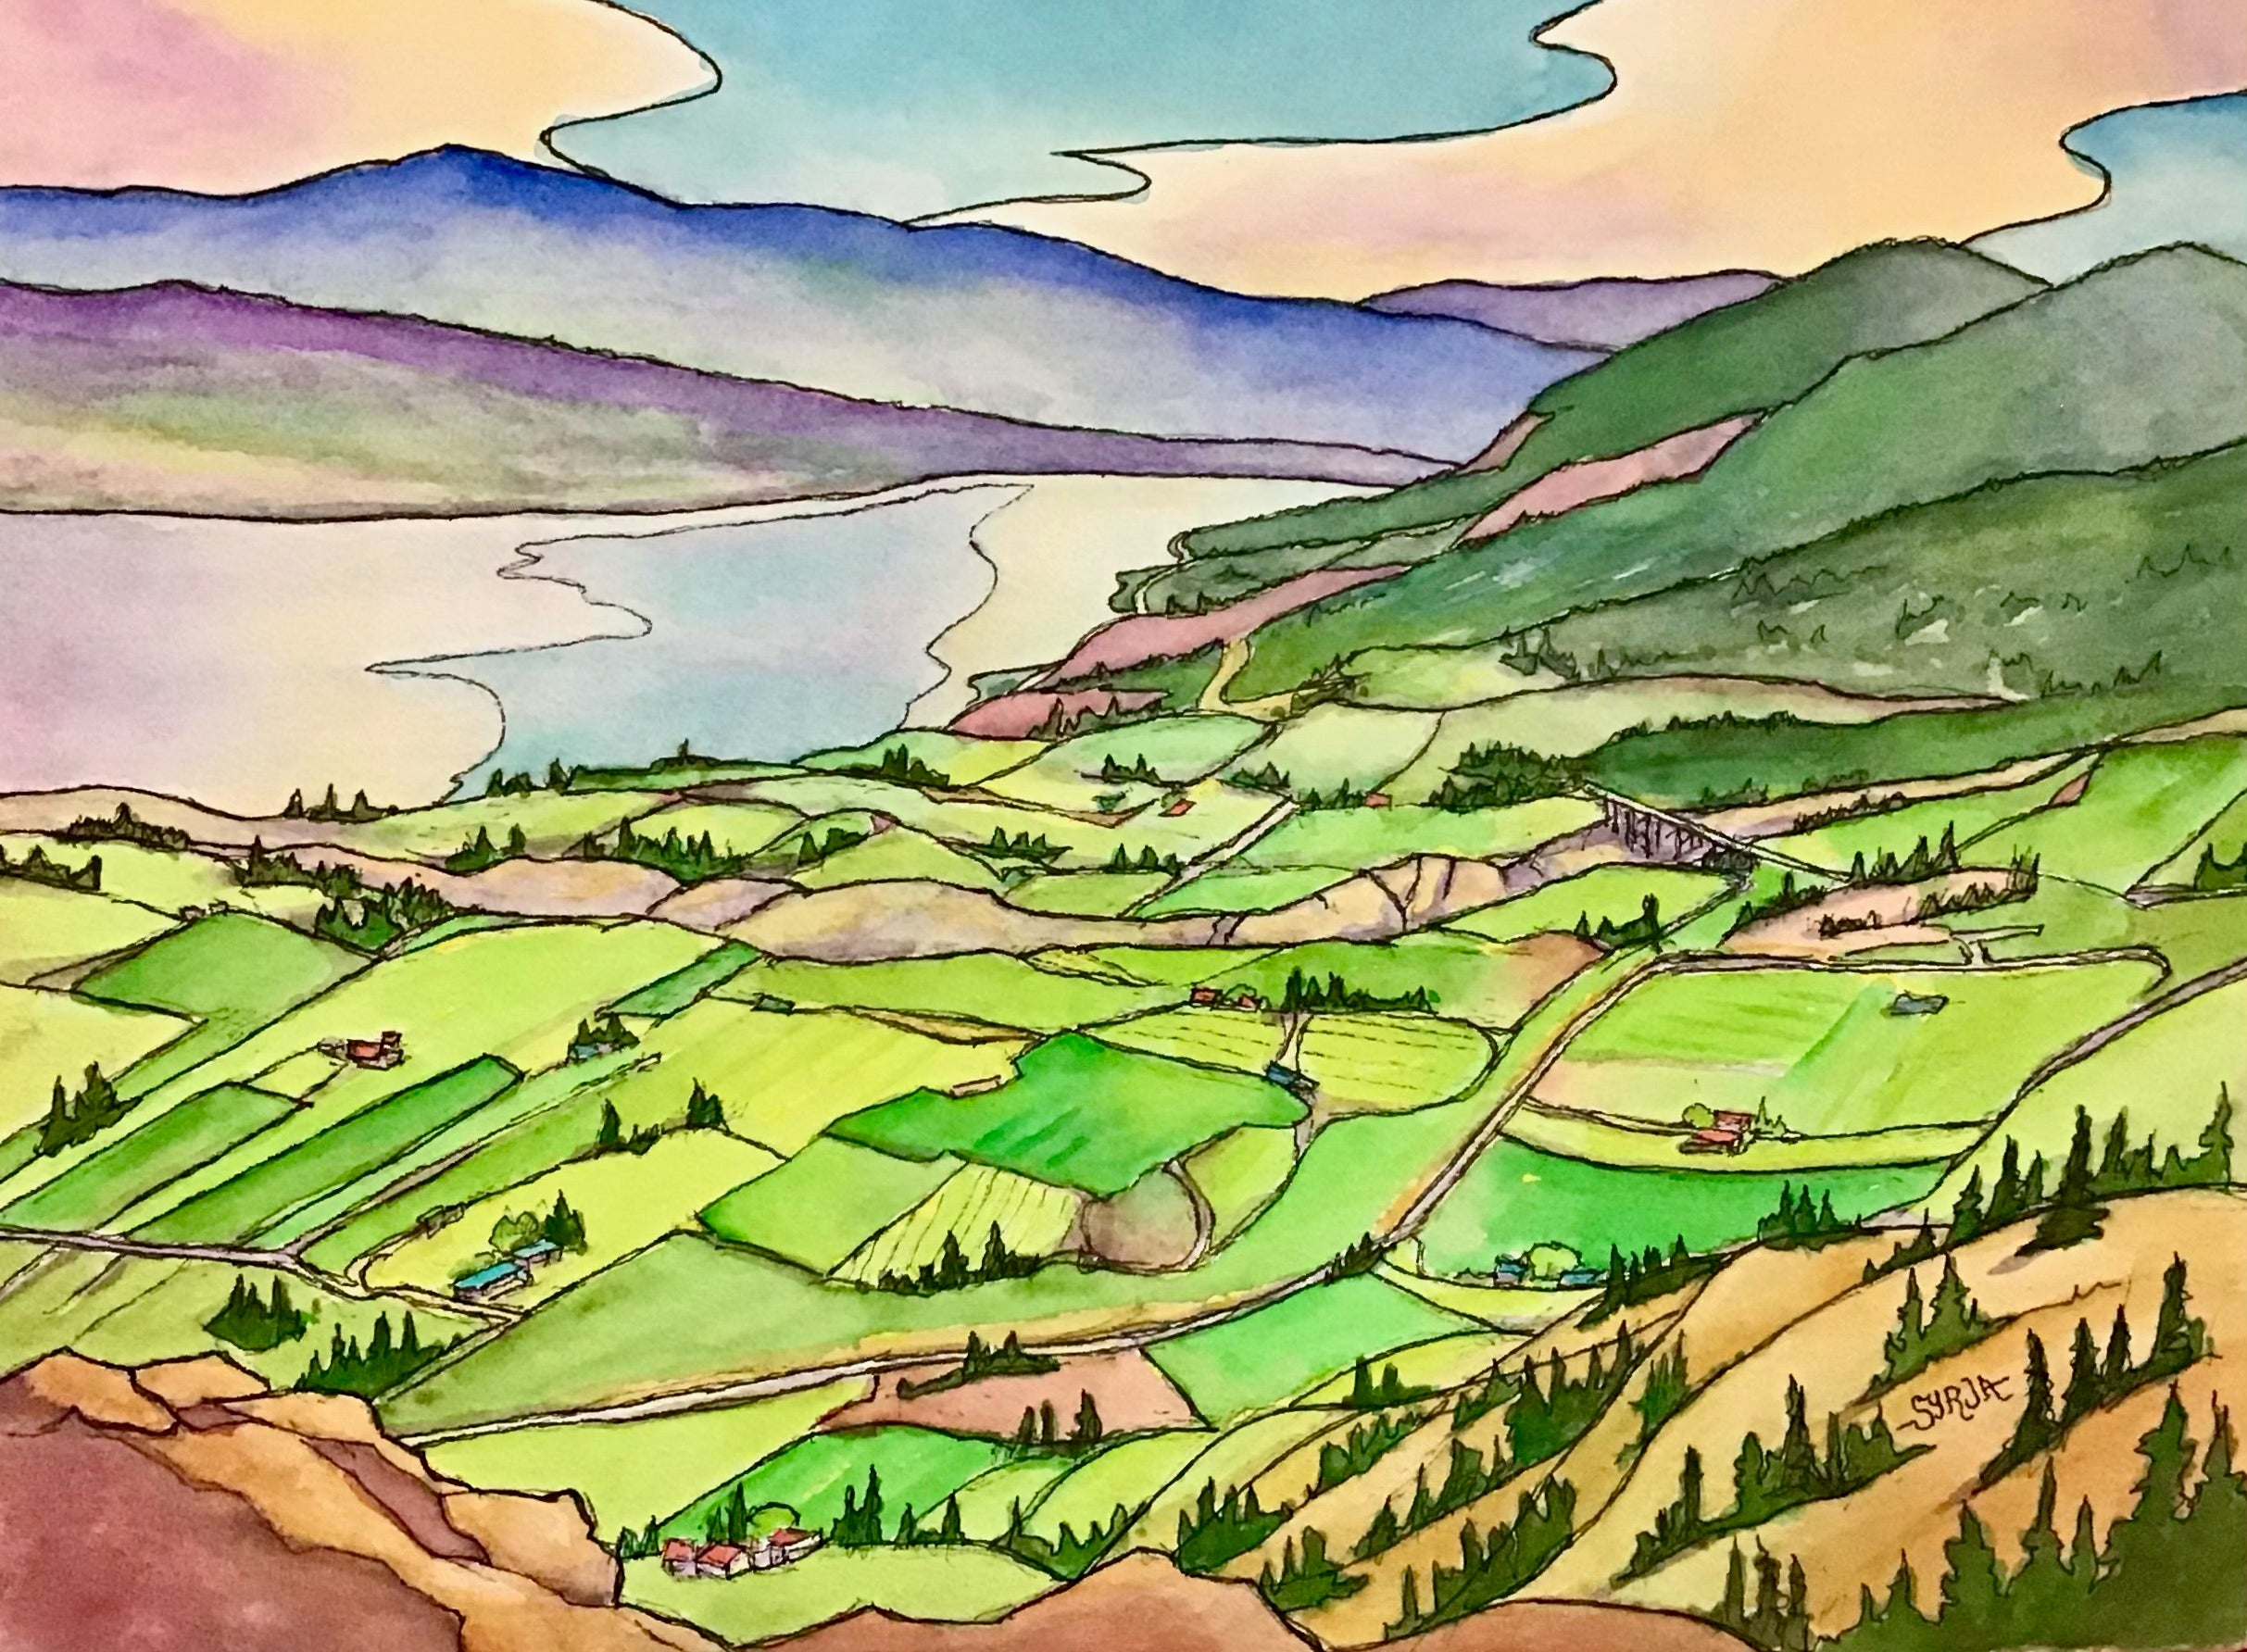 From Giants Head Mountain - Framed watercolour - $395